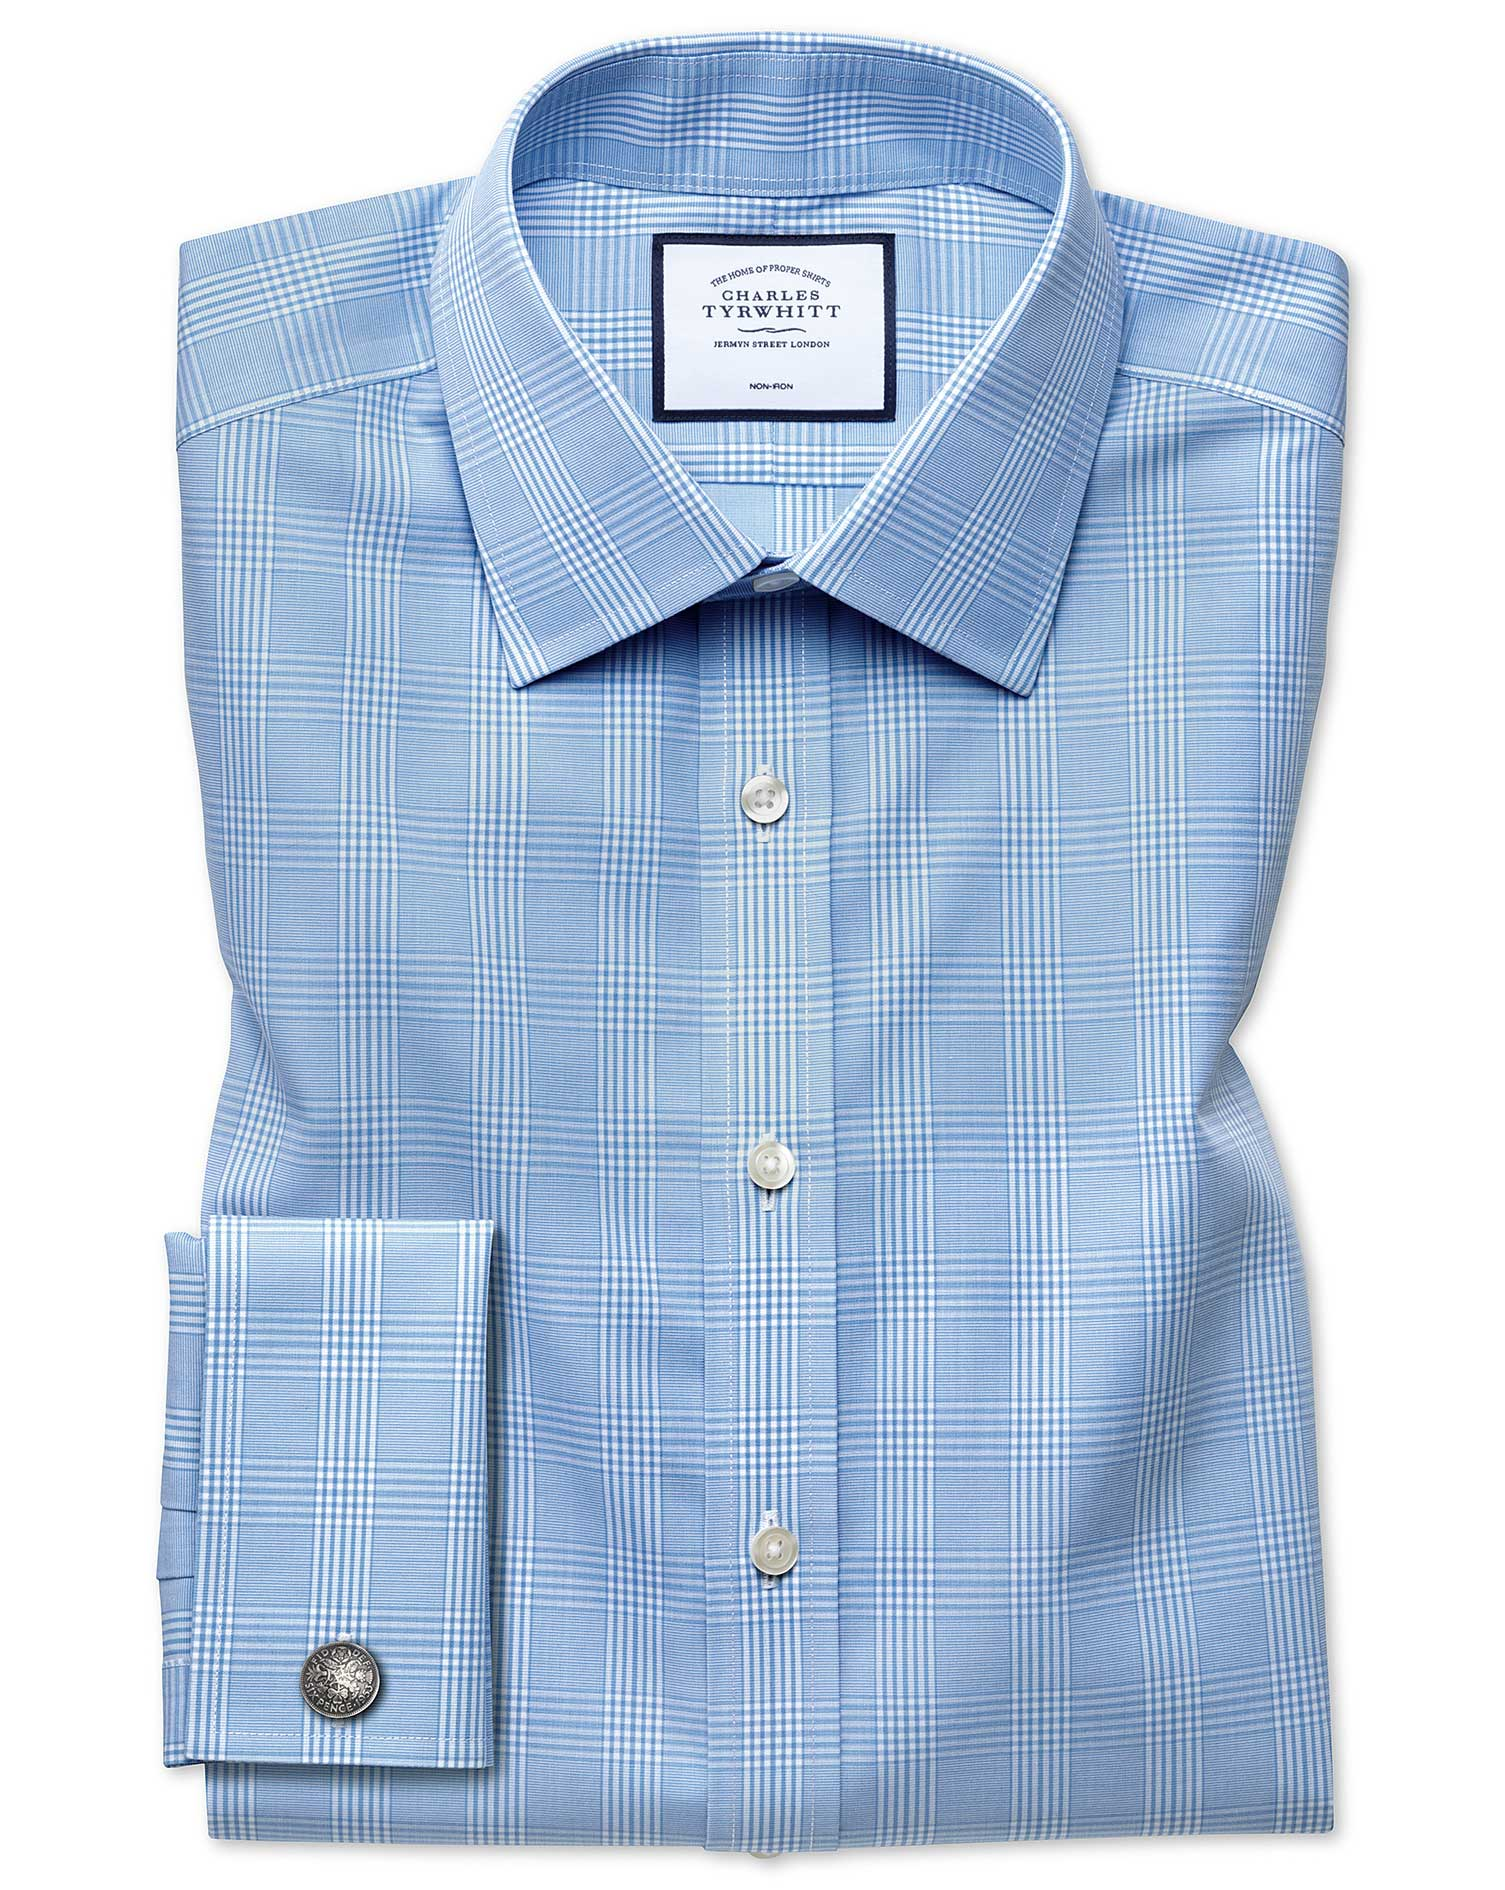 Classic Fit Non-Iron Prince Of Wales Sky Blue Cotton Formal Shirt Single Cuff Size 16.5/34 by Charle